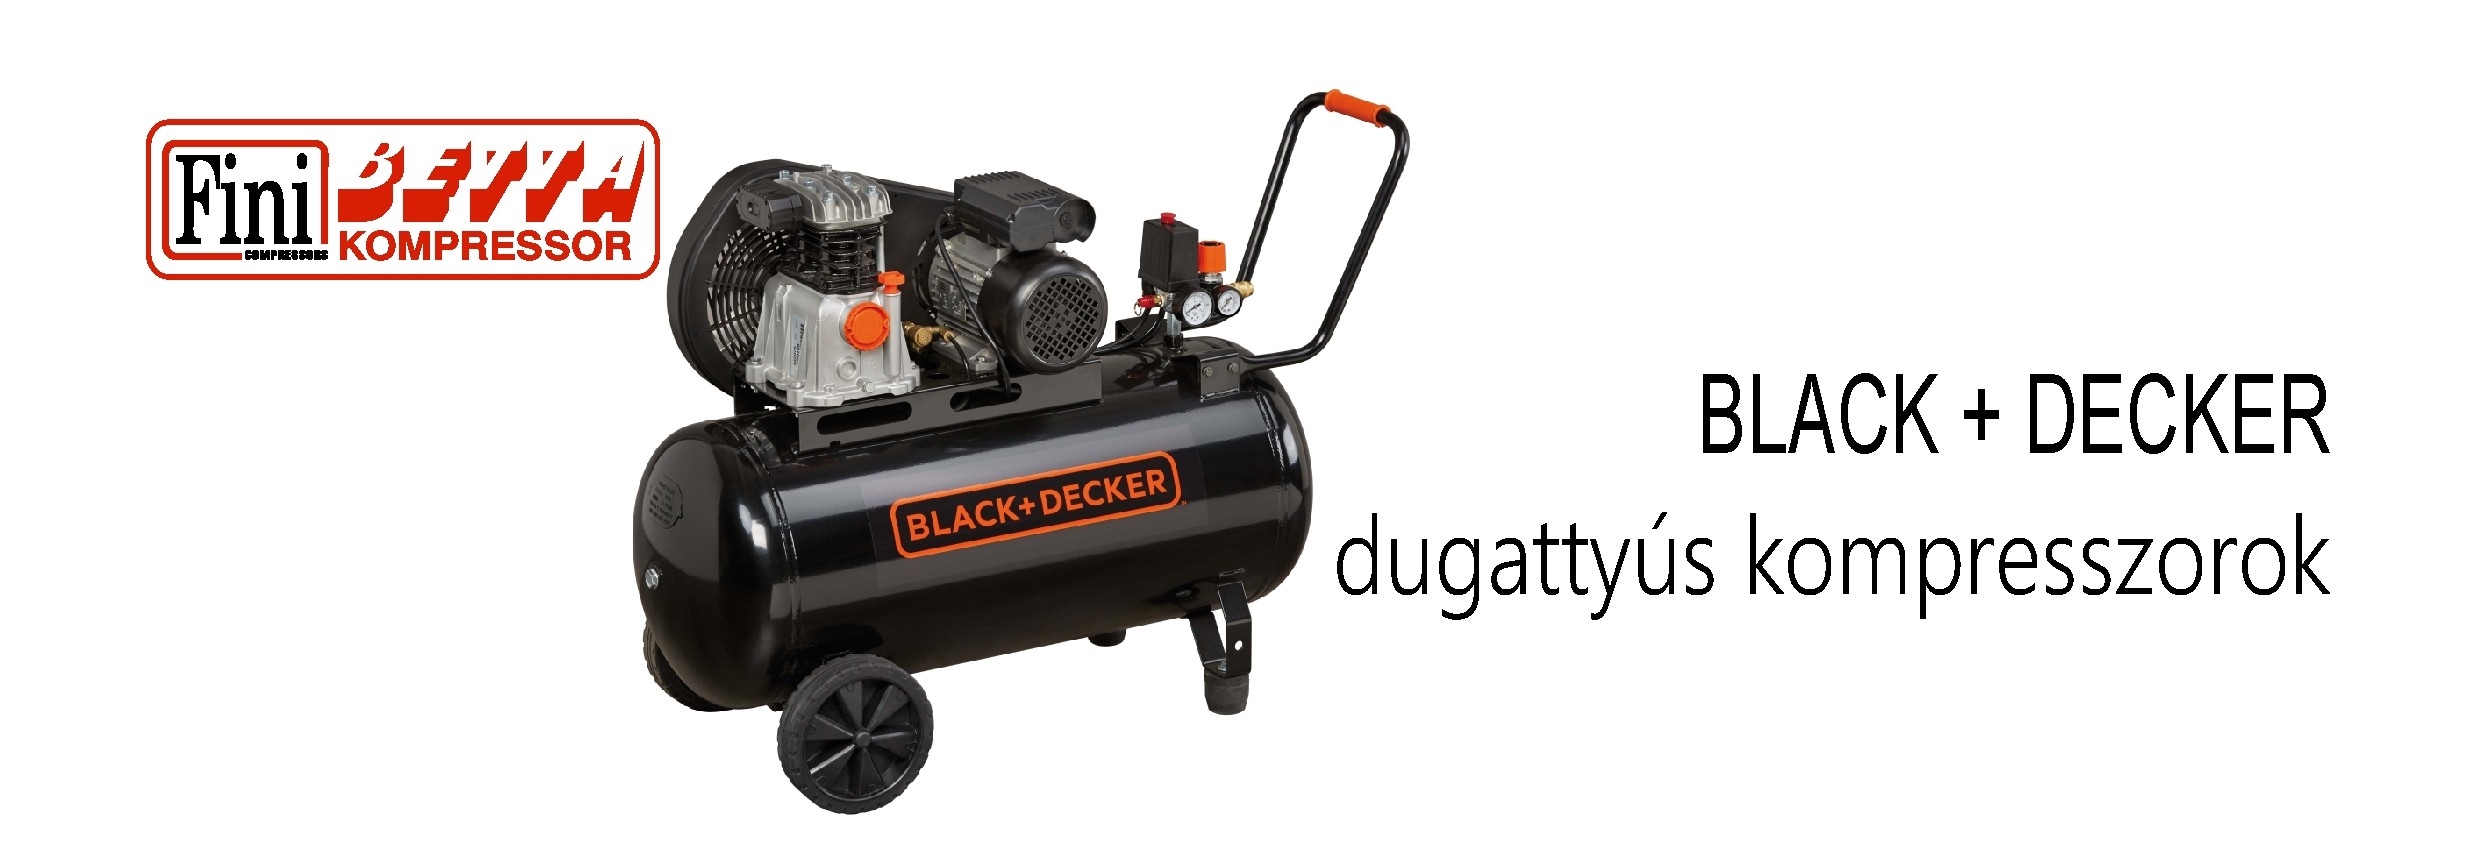 Black + Decker kompresszorok